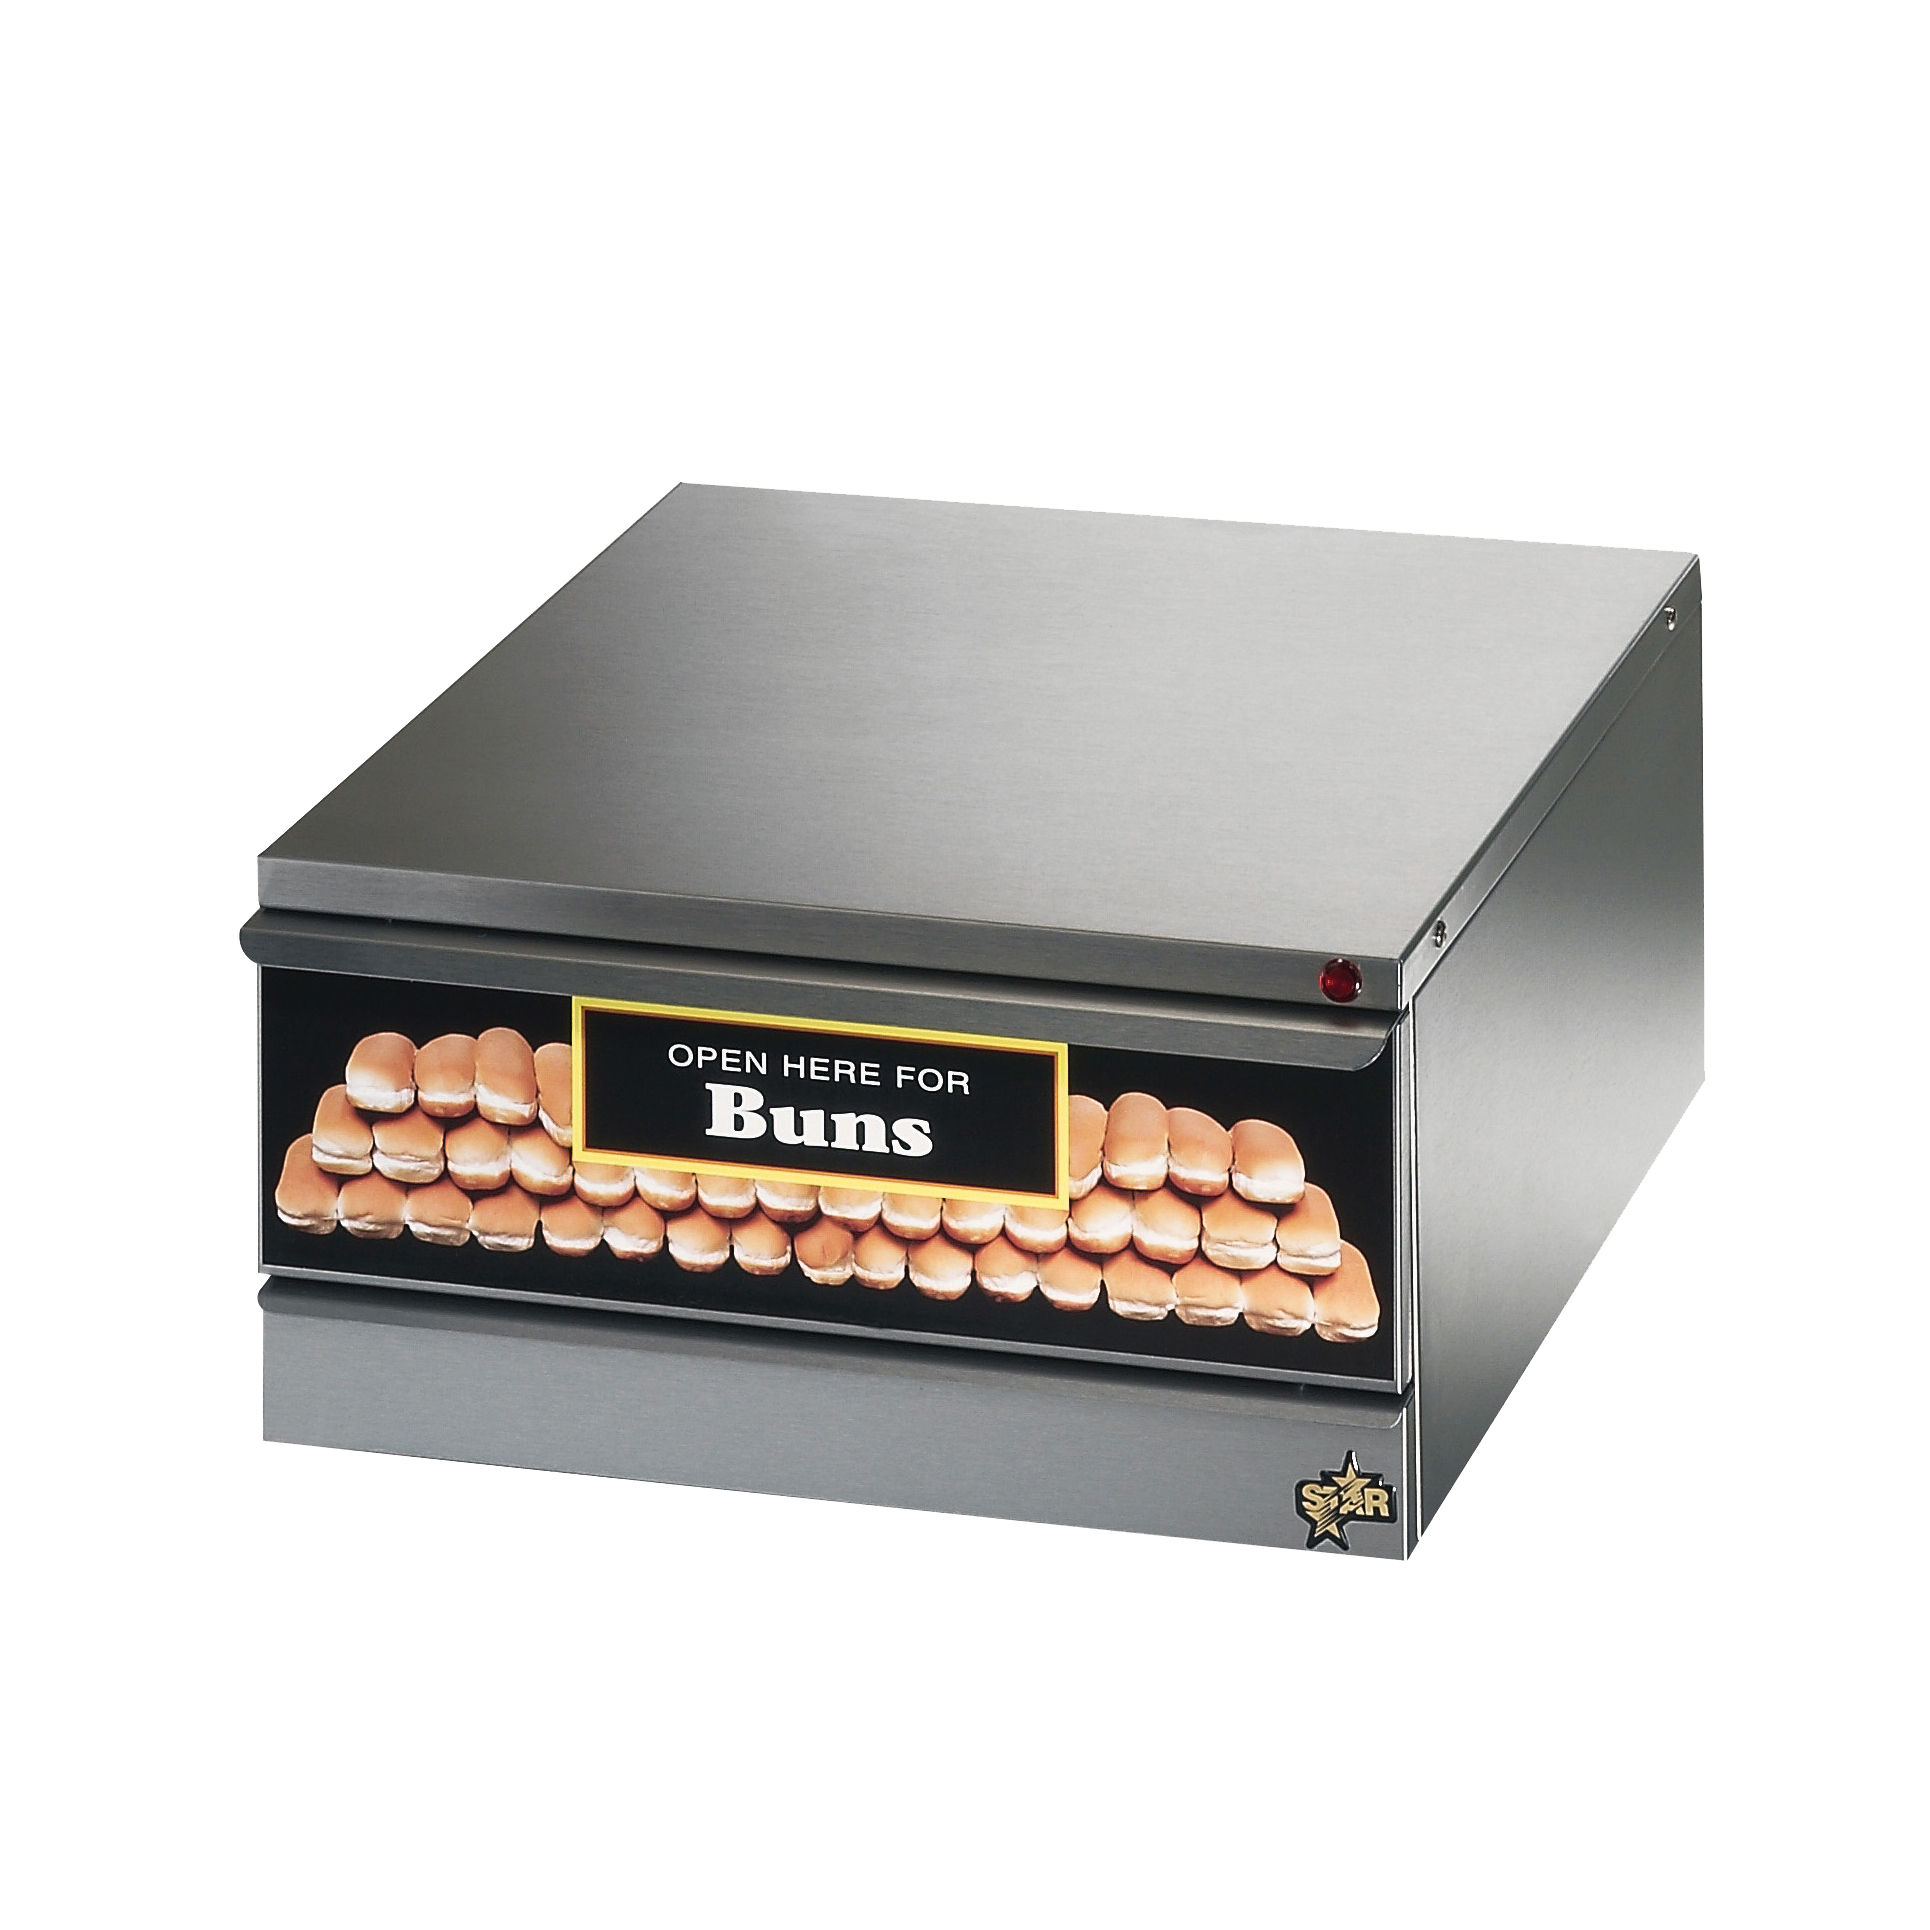 Star SST-20 hot dog bun / roll warmer